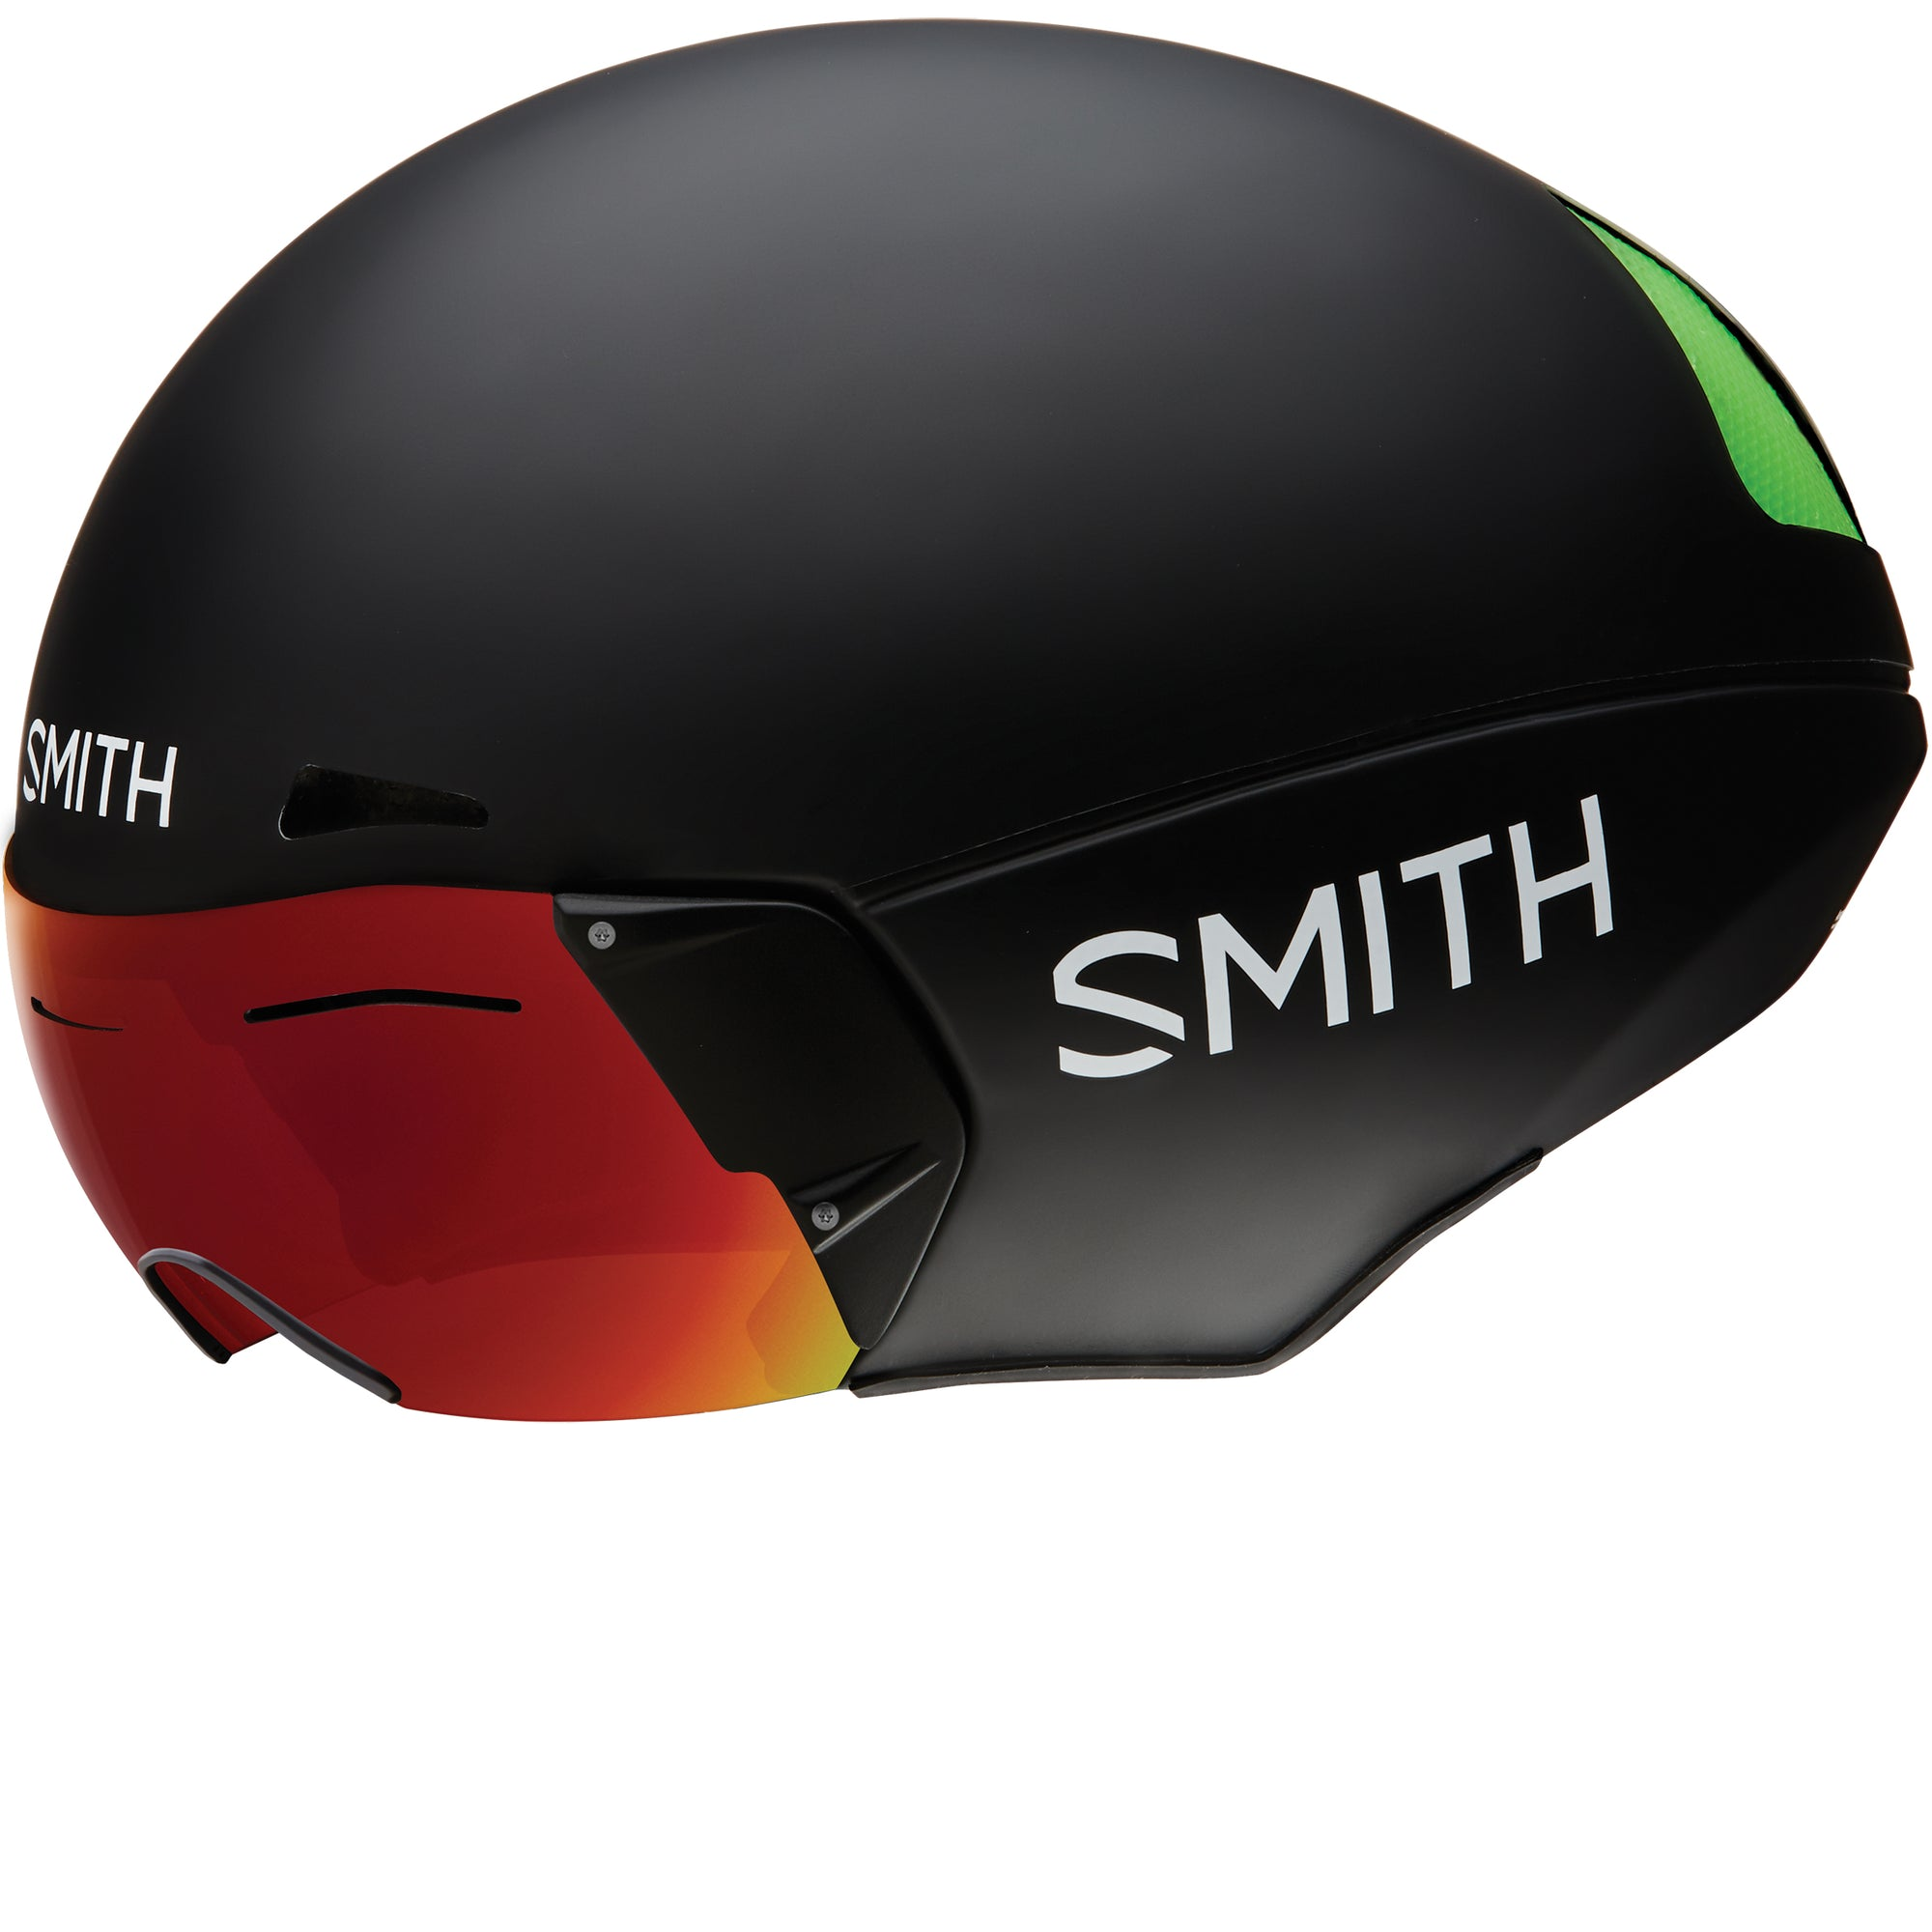 Casco Smith Podium TT M Mip W/lens BK 19 L